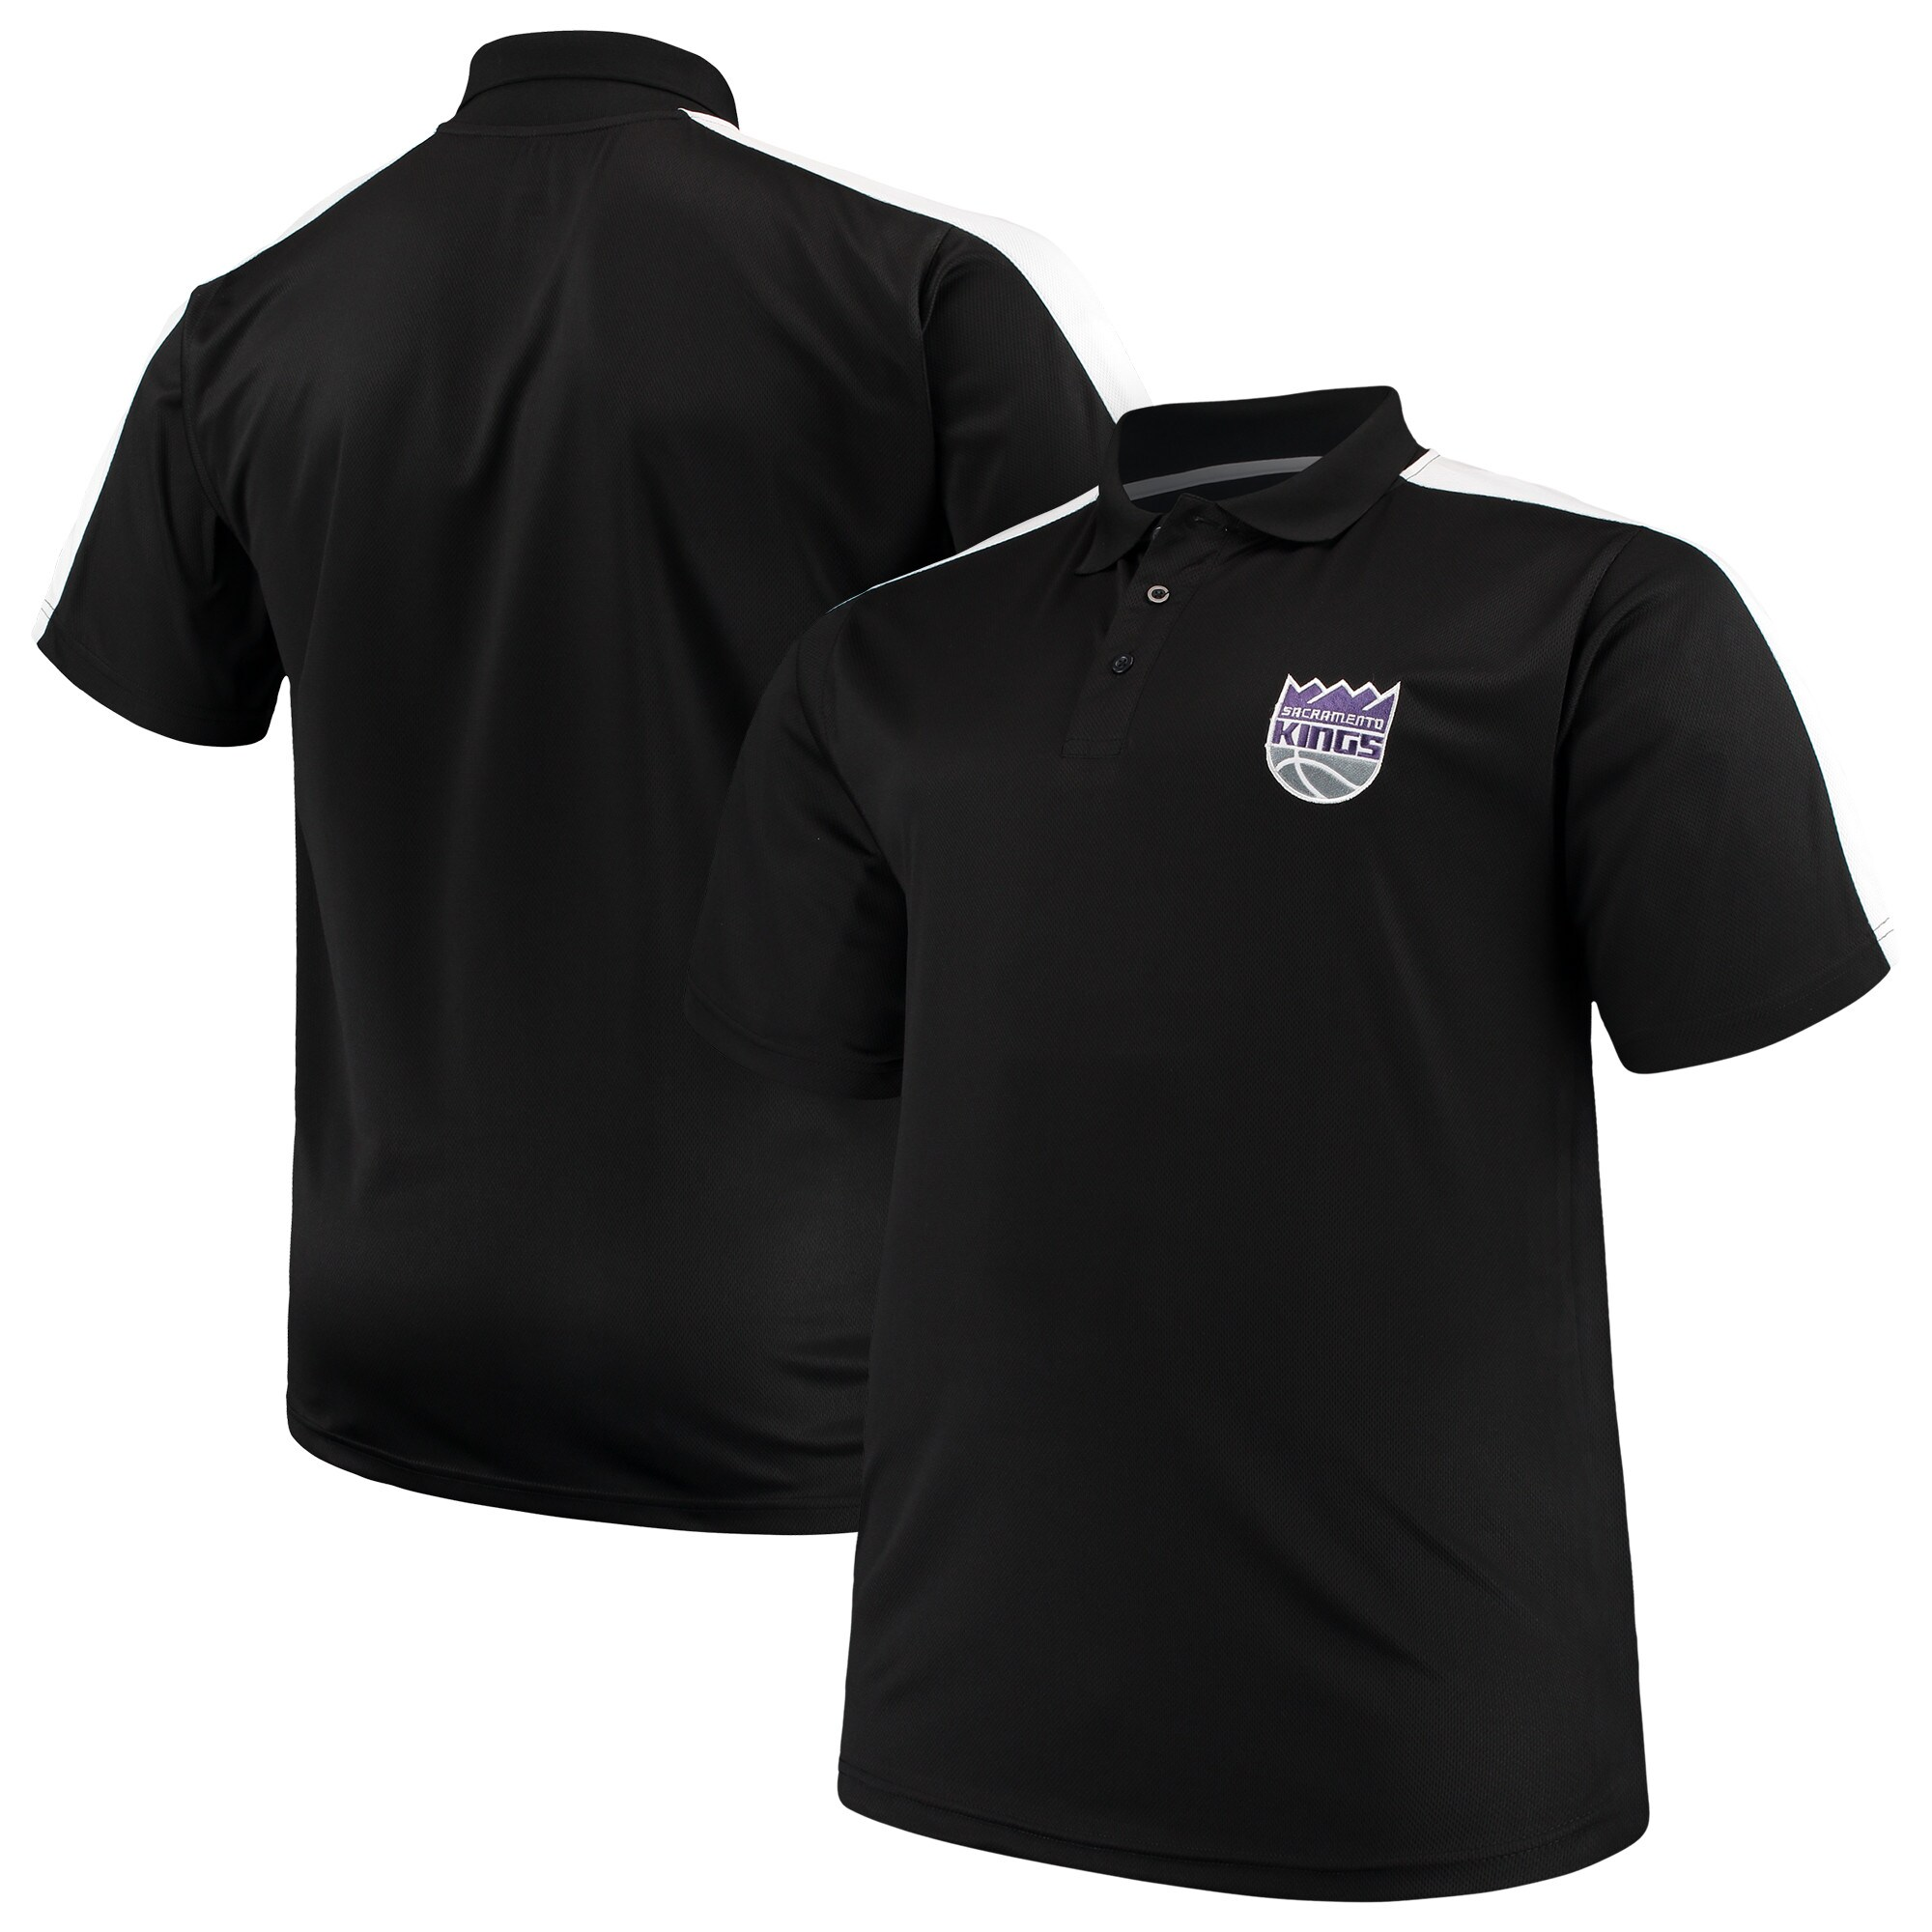 Sacramento Kings Majestic Big & Tall Birdseye Polo - Black/White